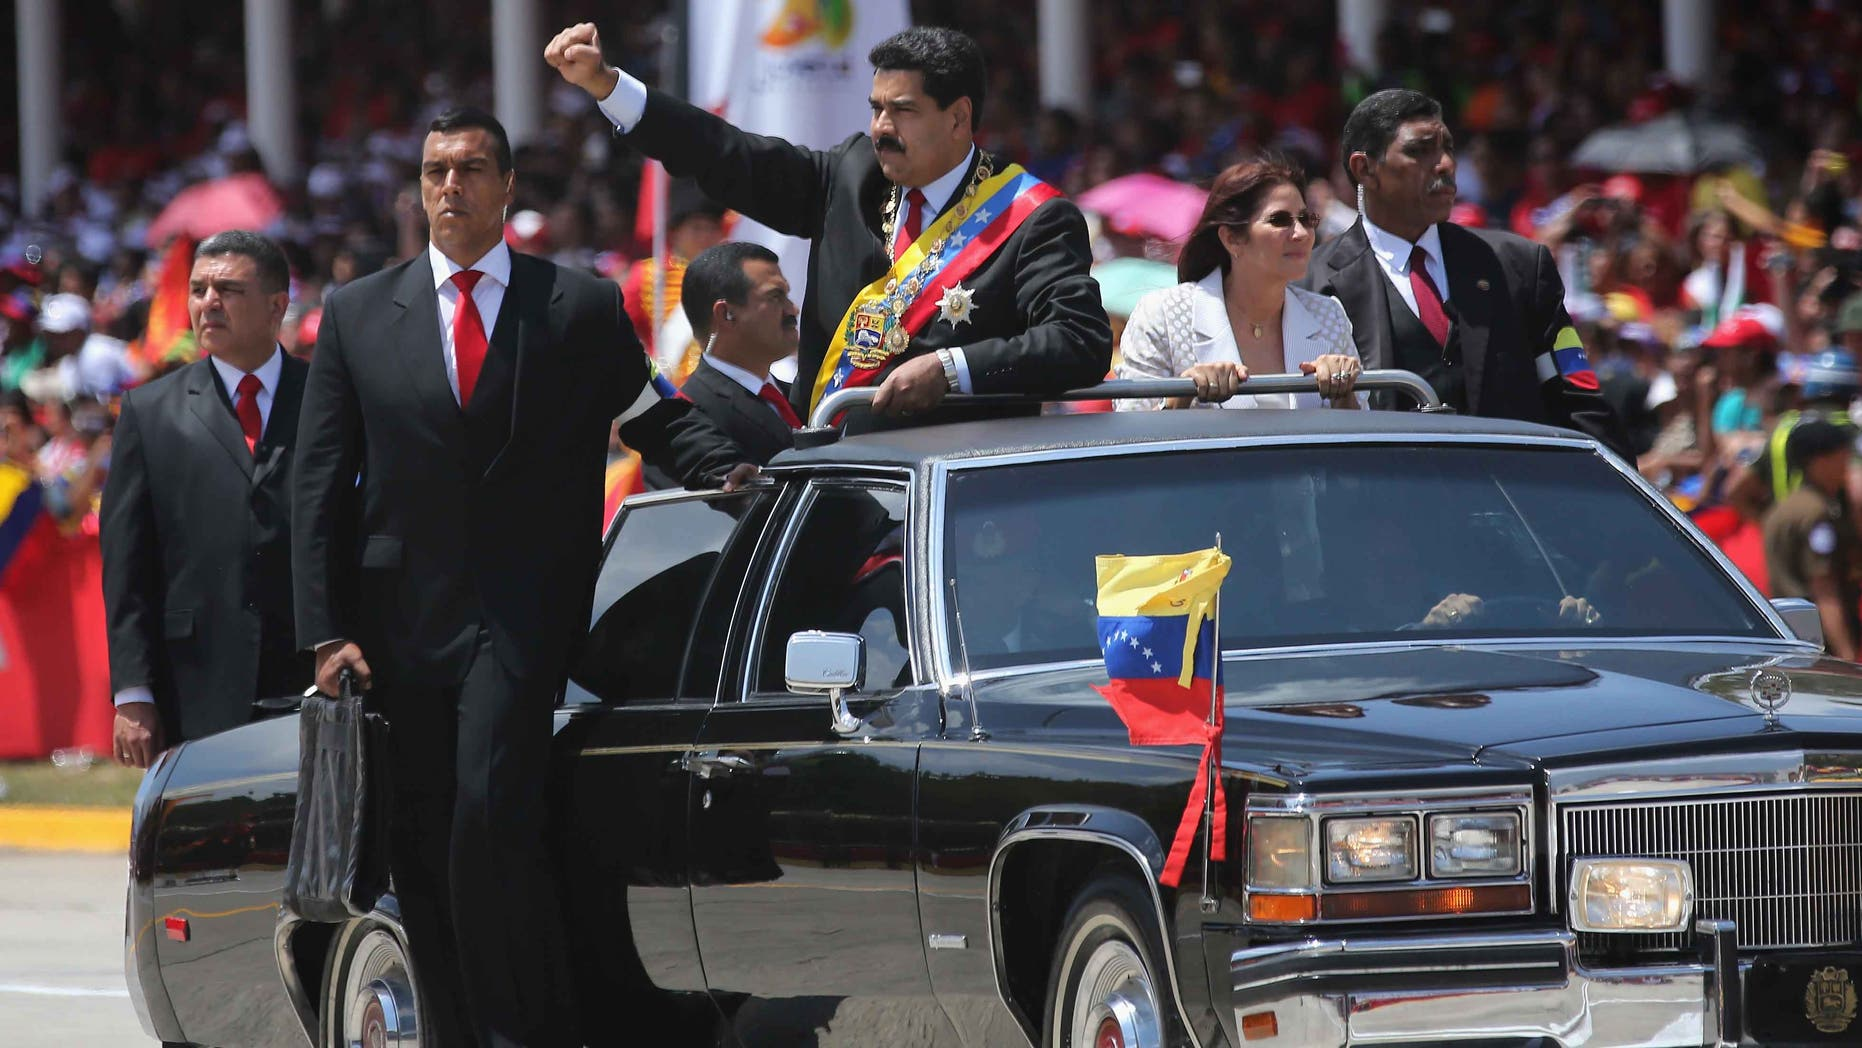 Venezuelan President Nicolas Maduro marking the first anniversary of the death of Hugo Chavez on March 5, 2014.